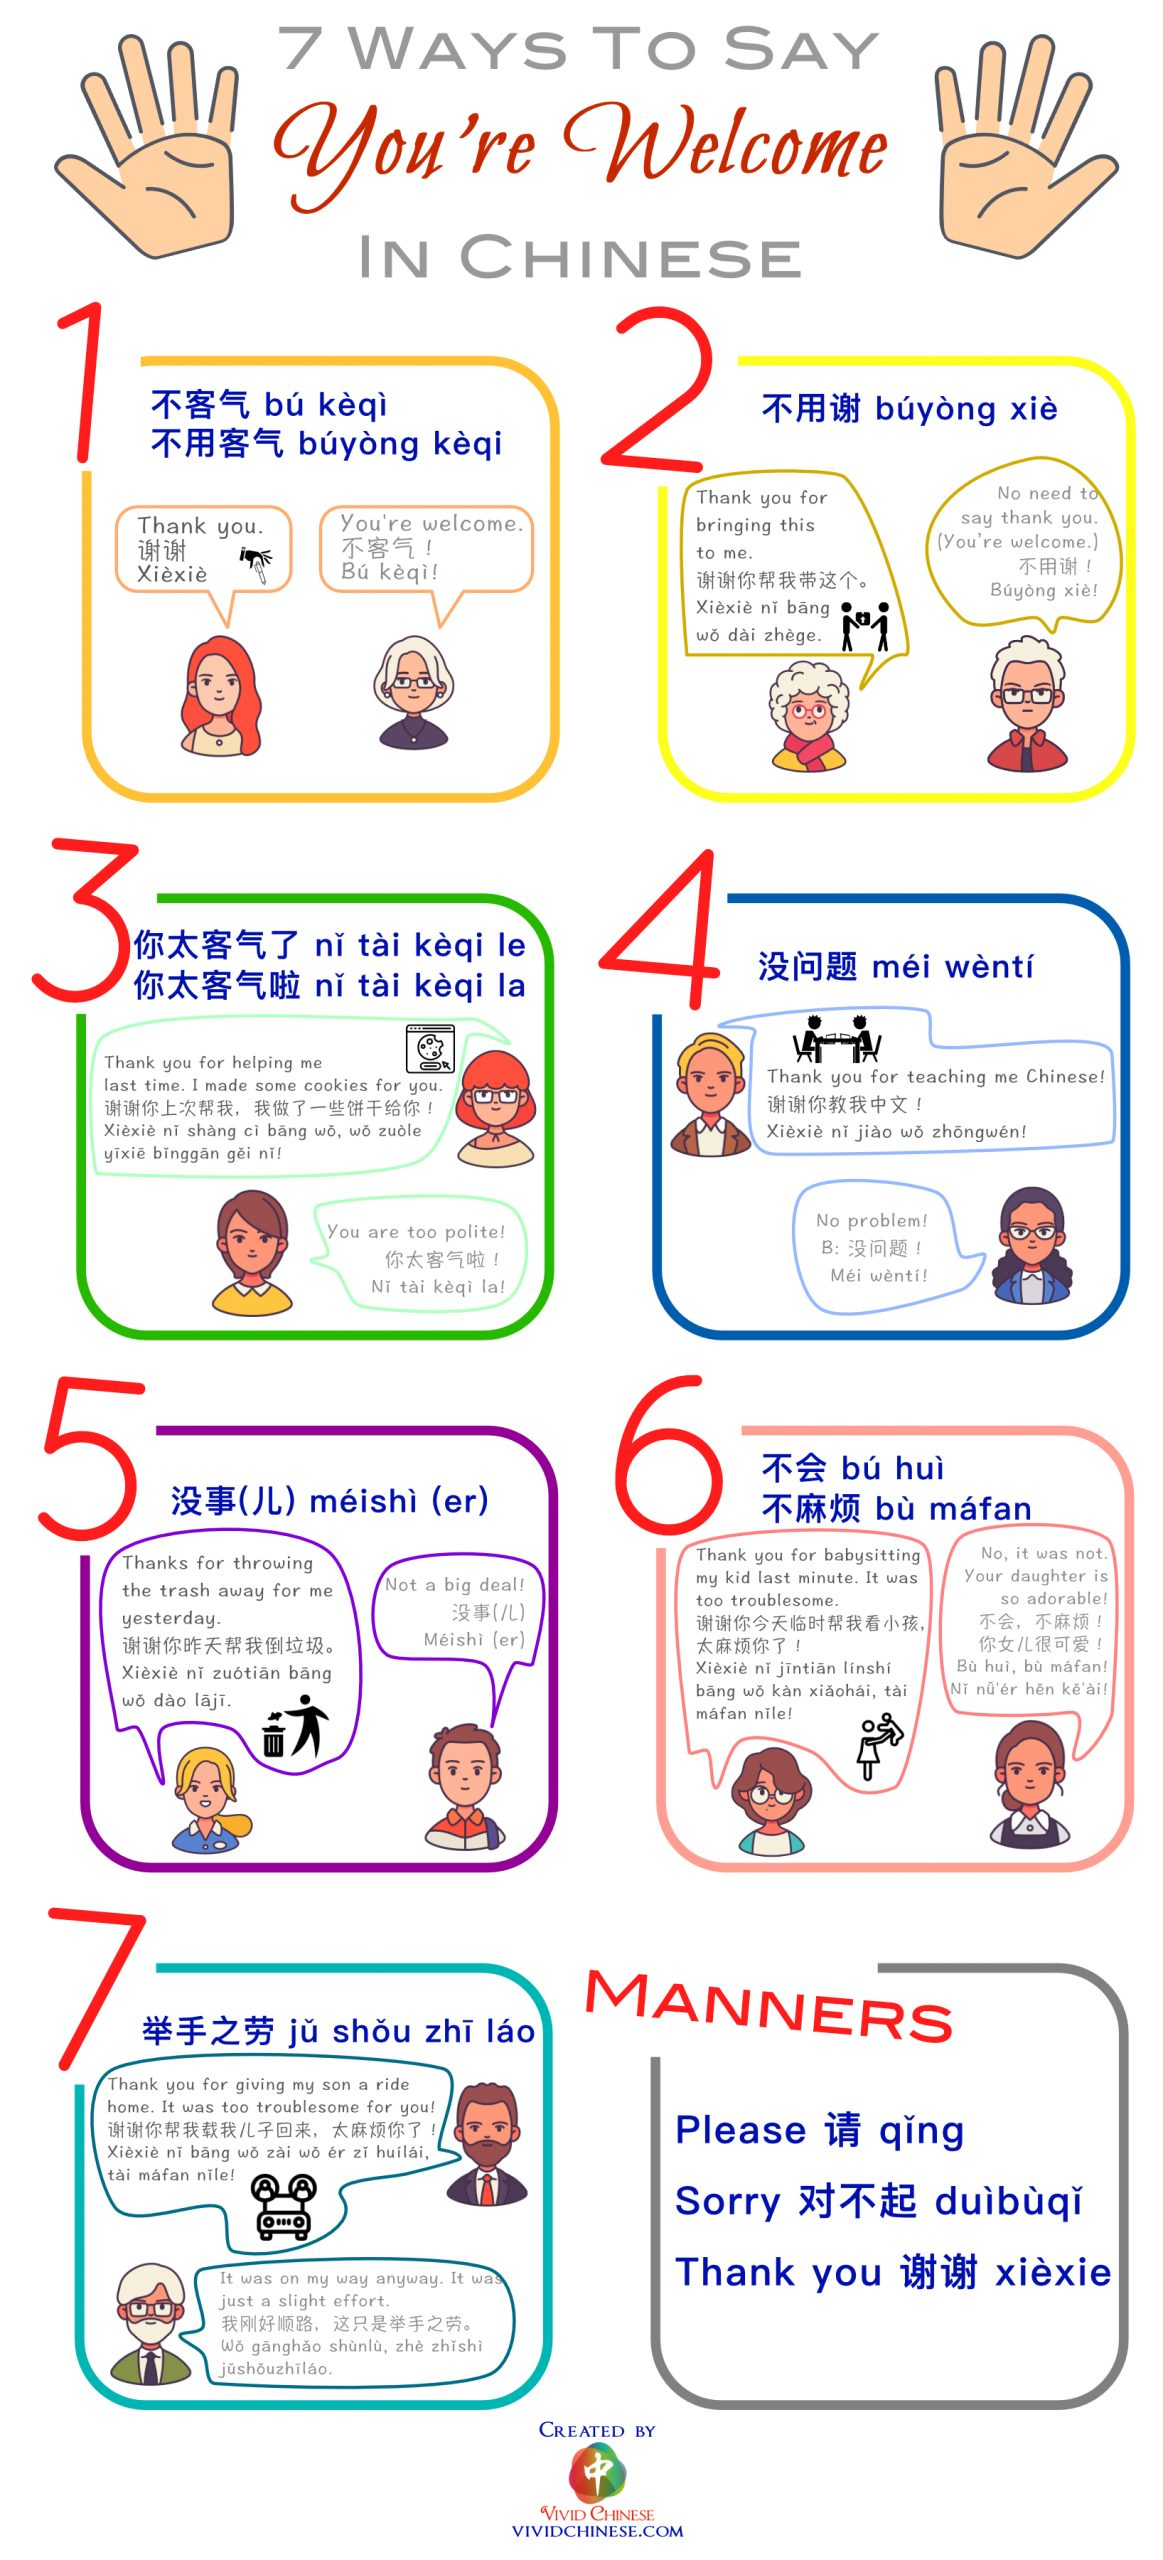 You're Welcome in Mandarin Chinese Infographic